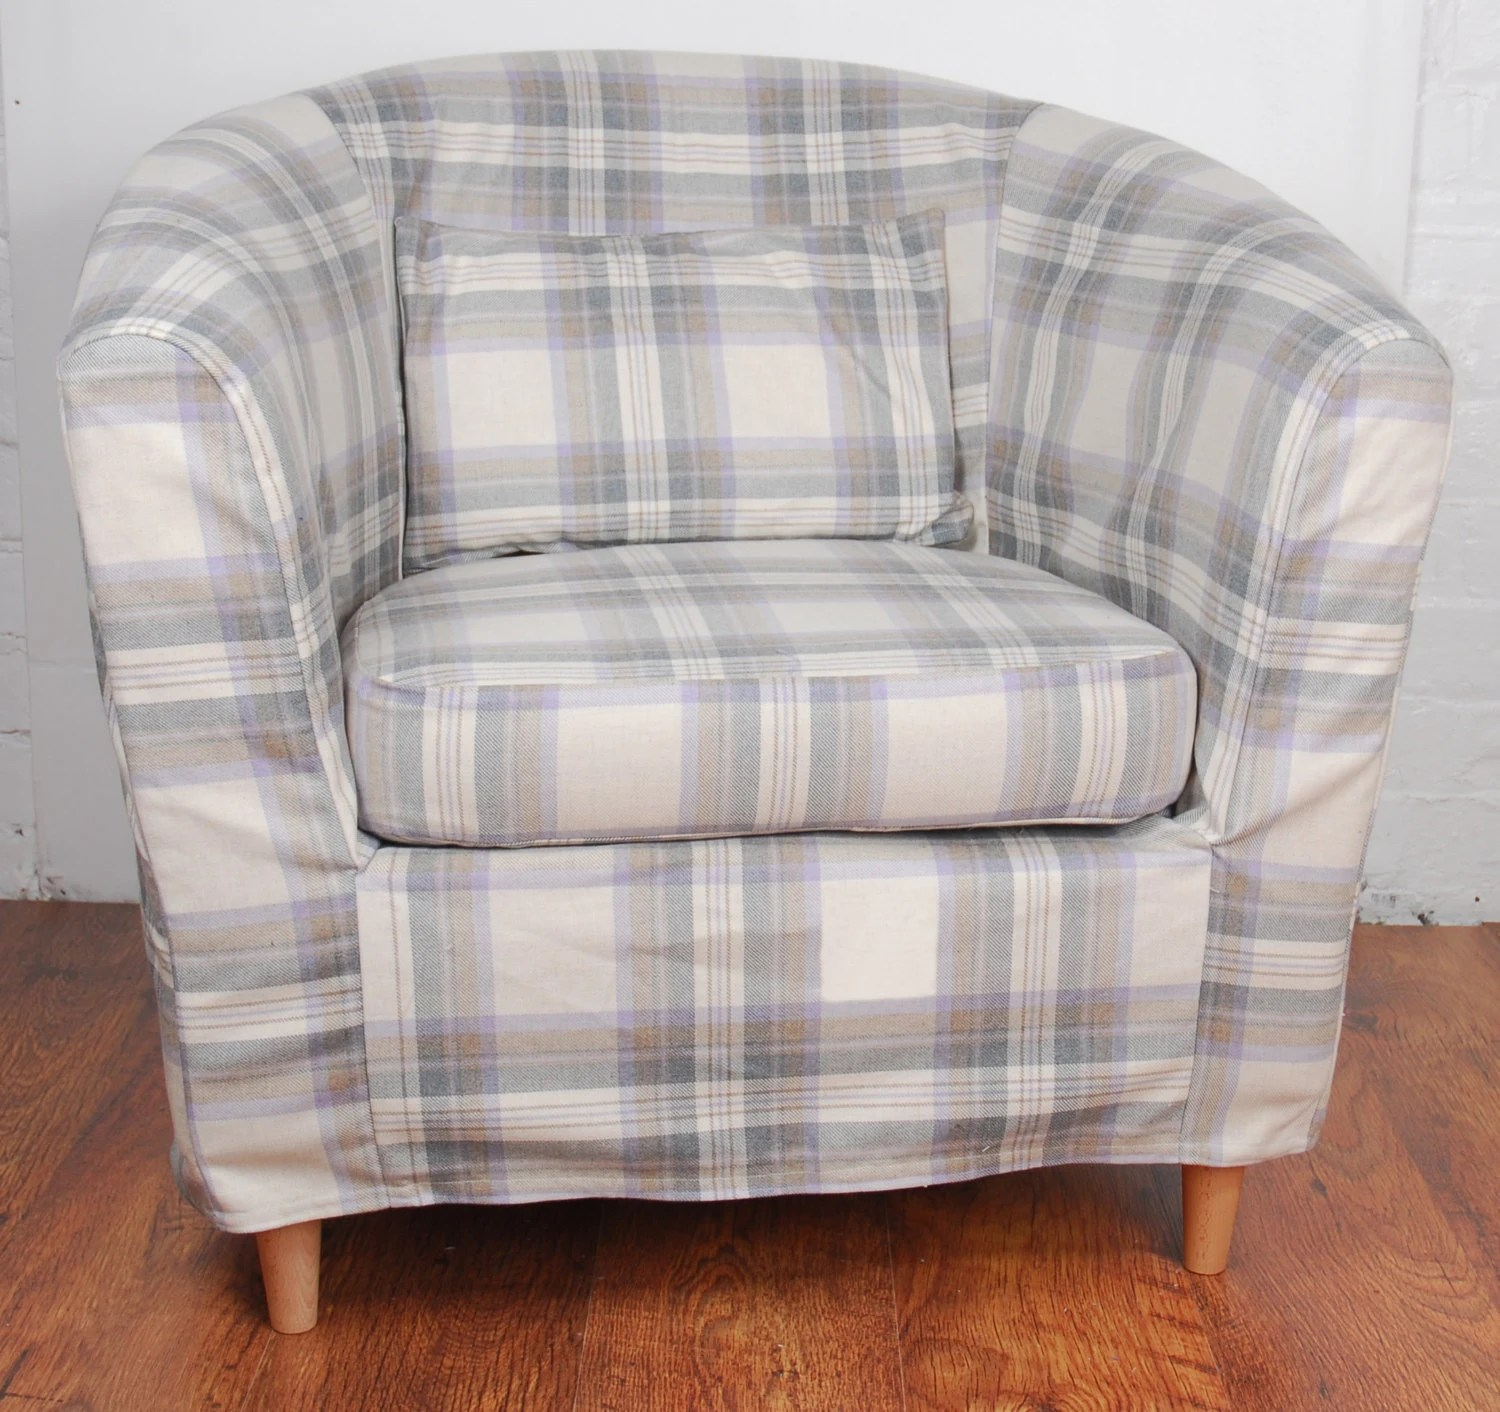 ikea tullsta chair covers uk room hammock slip cover for the ektorp tub grey tartan